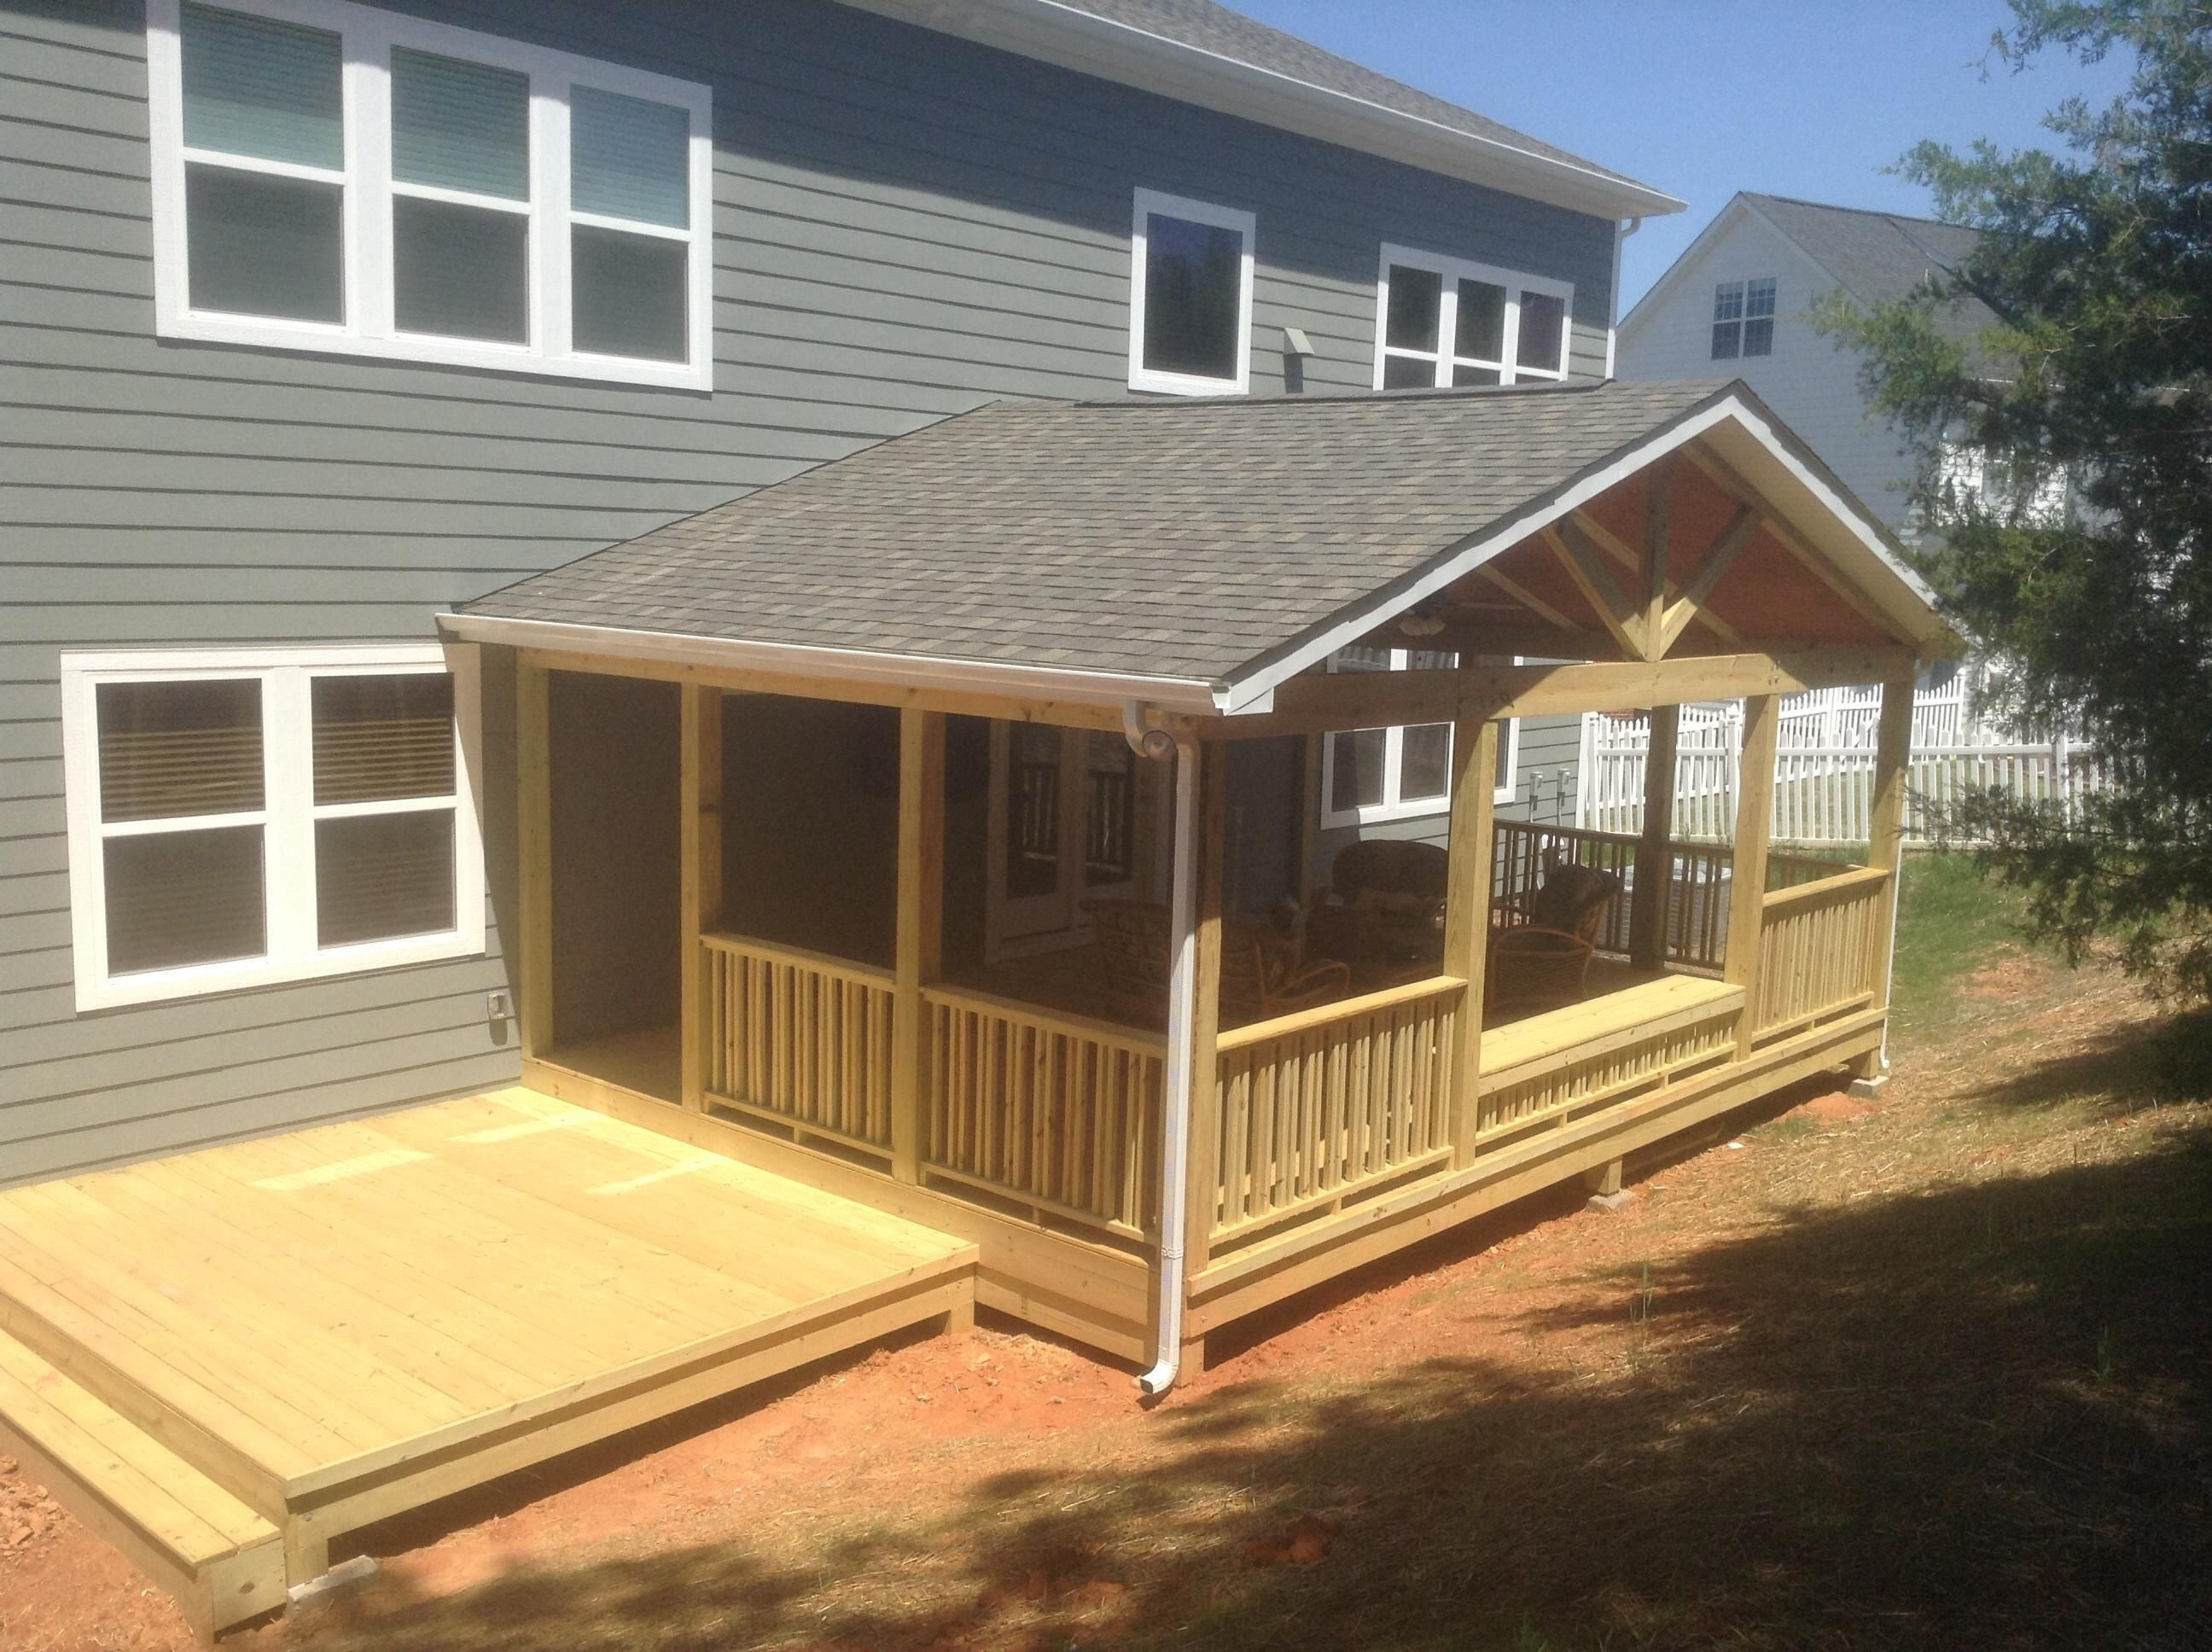 Designed 16 39 X 24 39 Covered Deck With10 39 X 12 39 Sun Deck